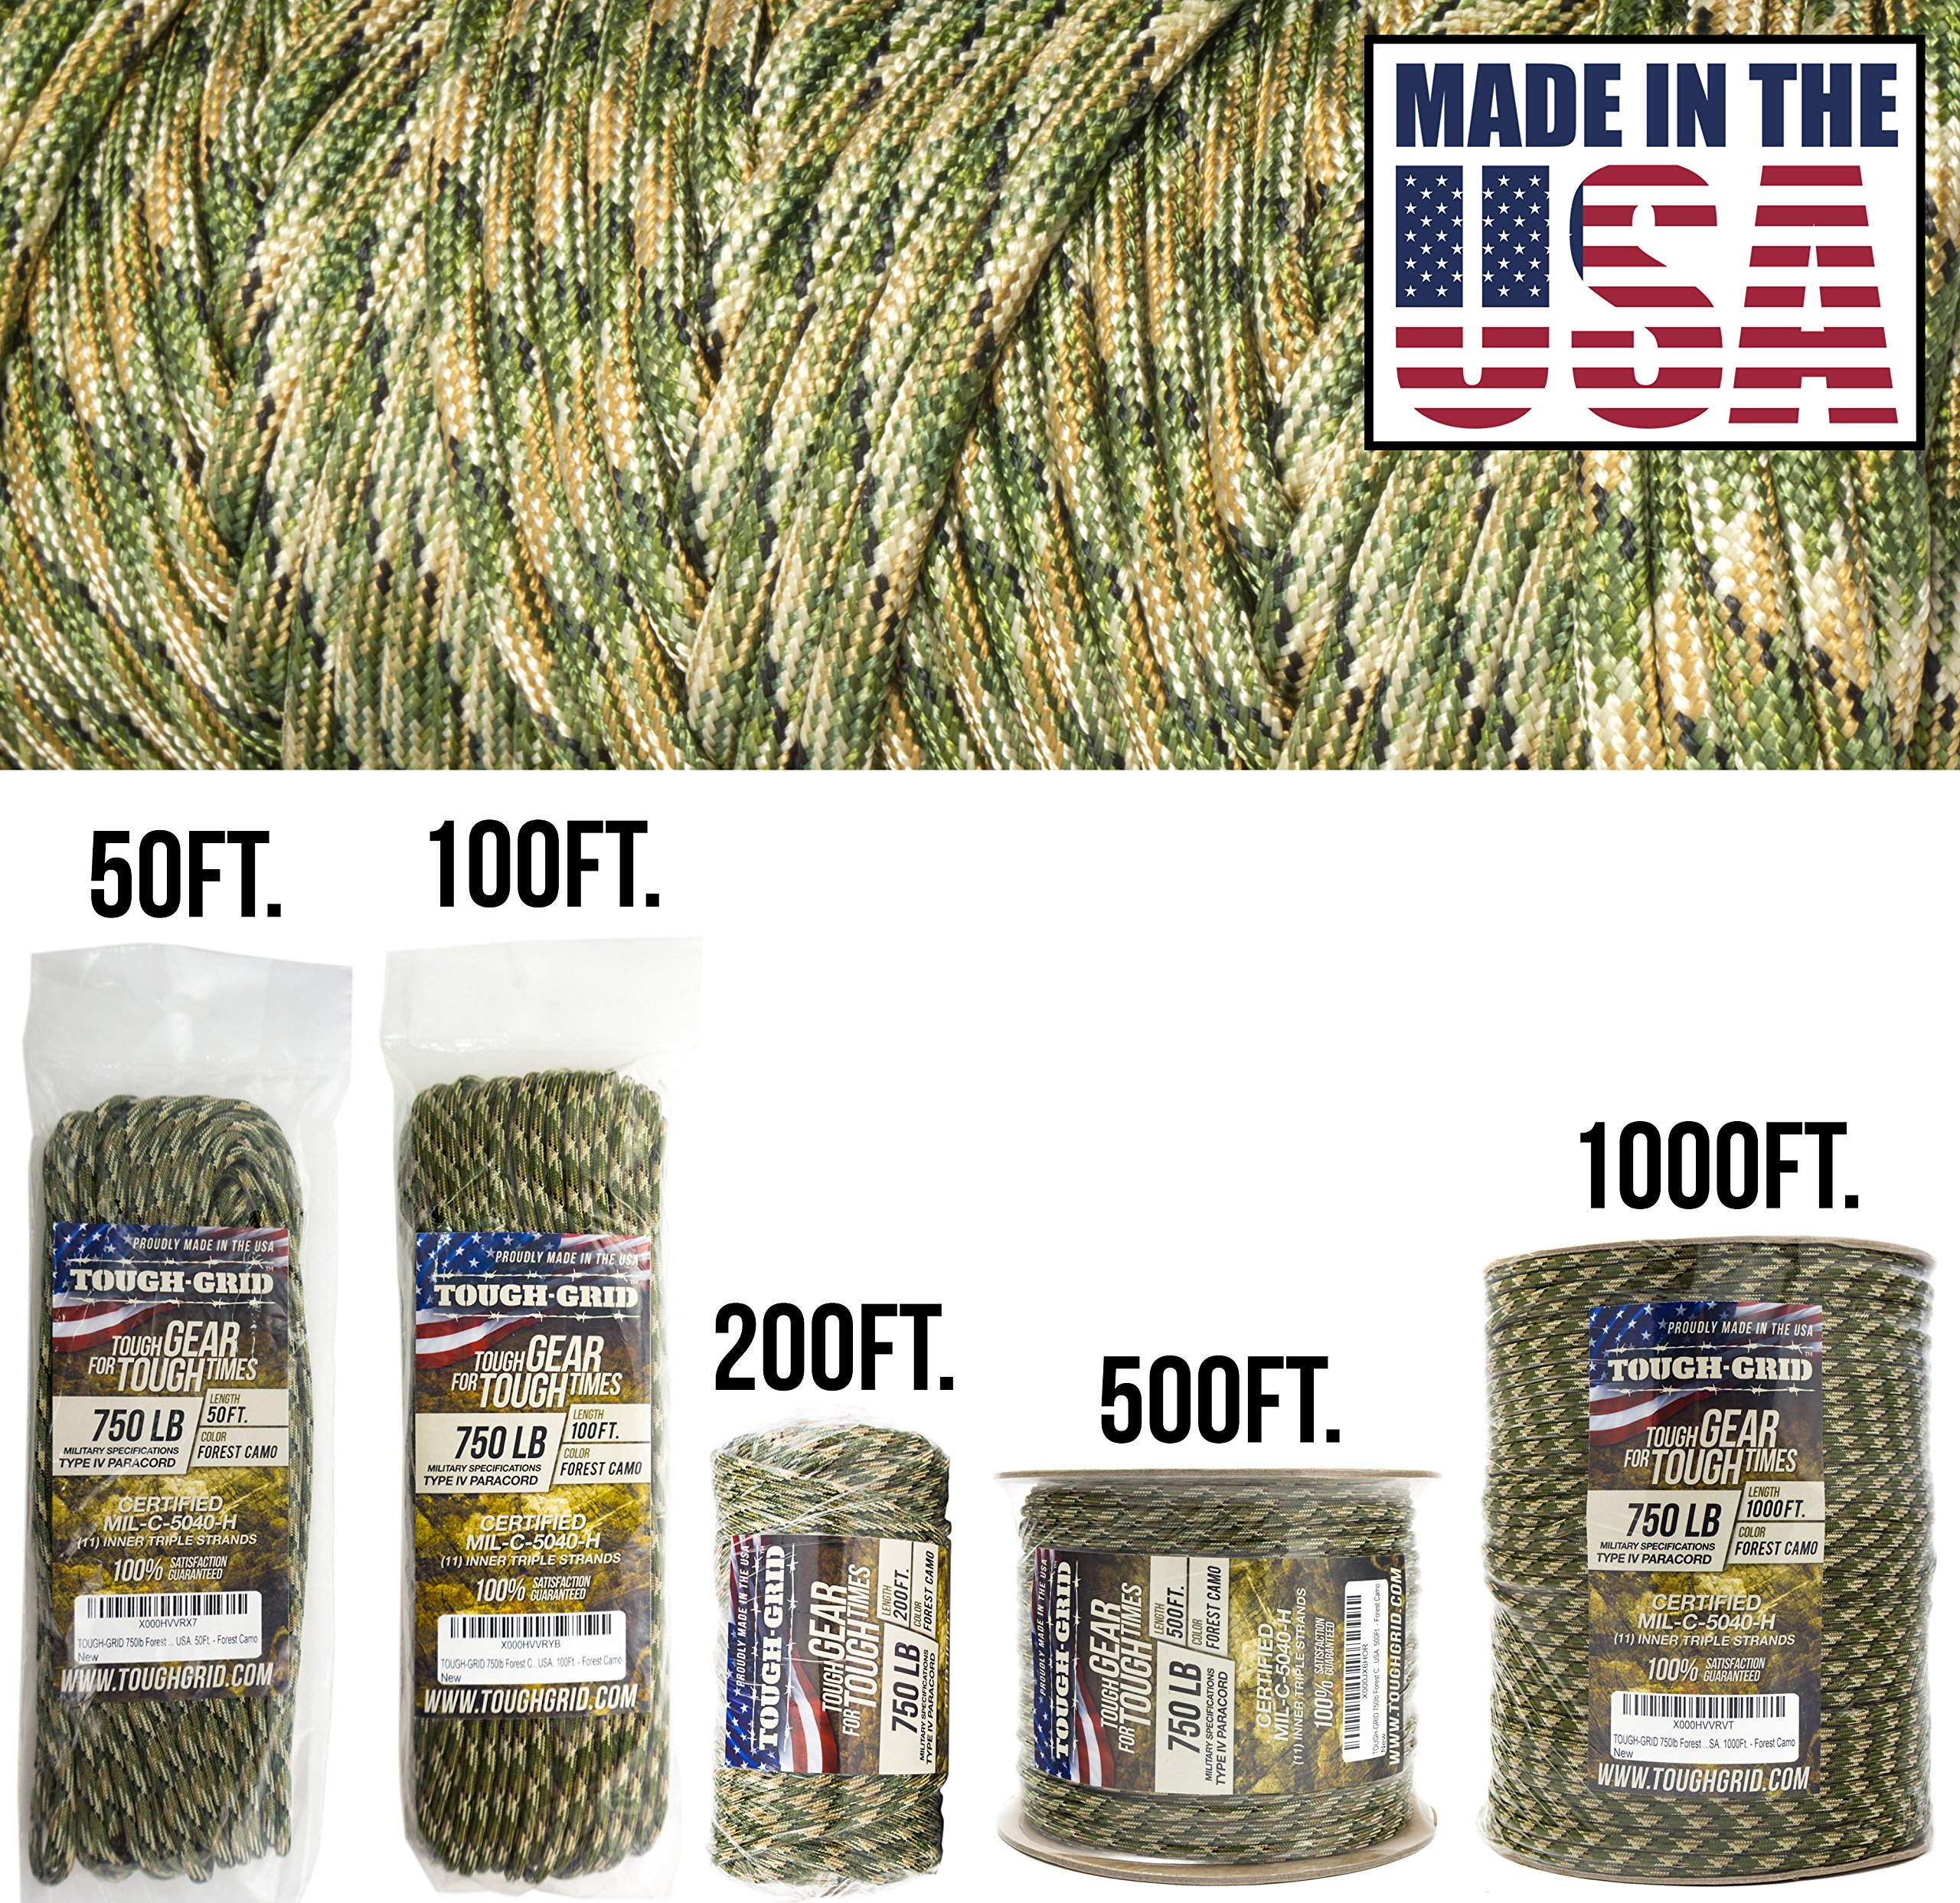 TOUGH-GRID 750lb Forest Camo Paracord/Parachute Cord - Genuine Mil Spec Type IV 750lb Paracord Used by The US Military (MIl-C-5040-H) - 100% Nylon - Made in The USA. 1000Ft. - Forest Camo by TOUGH-GRID